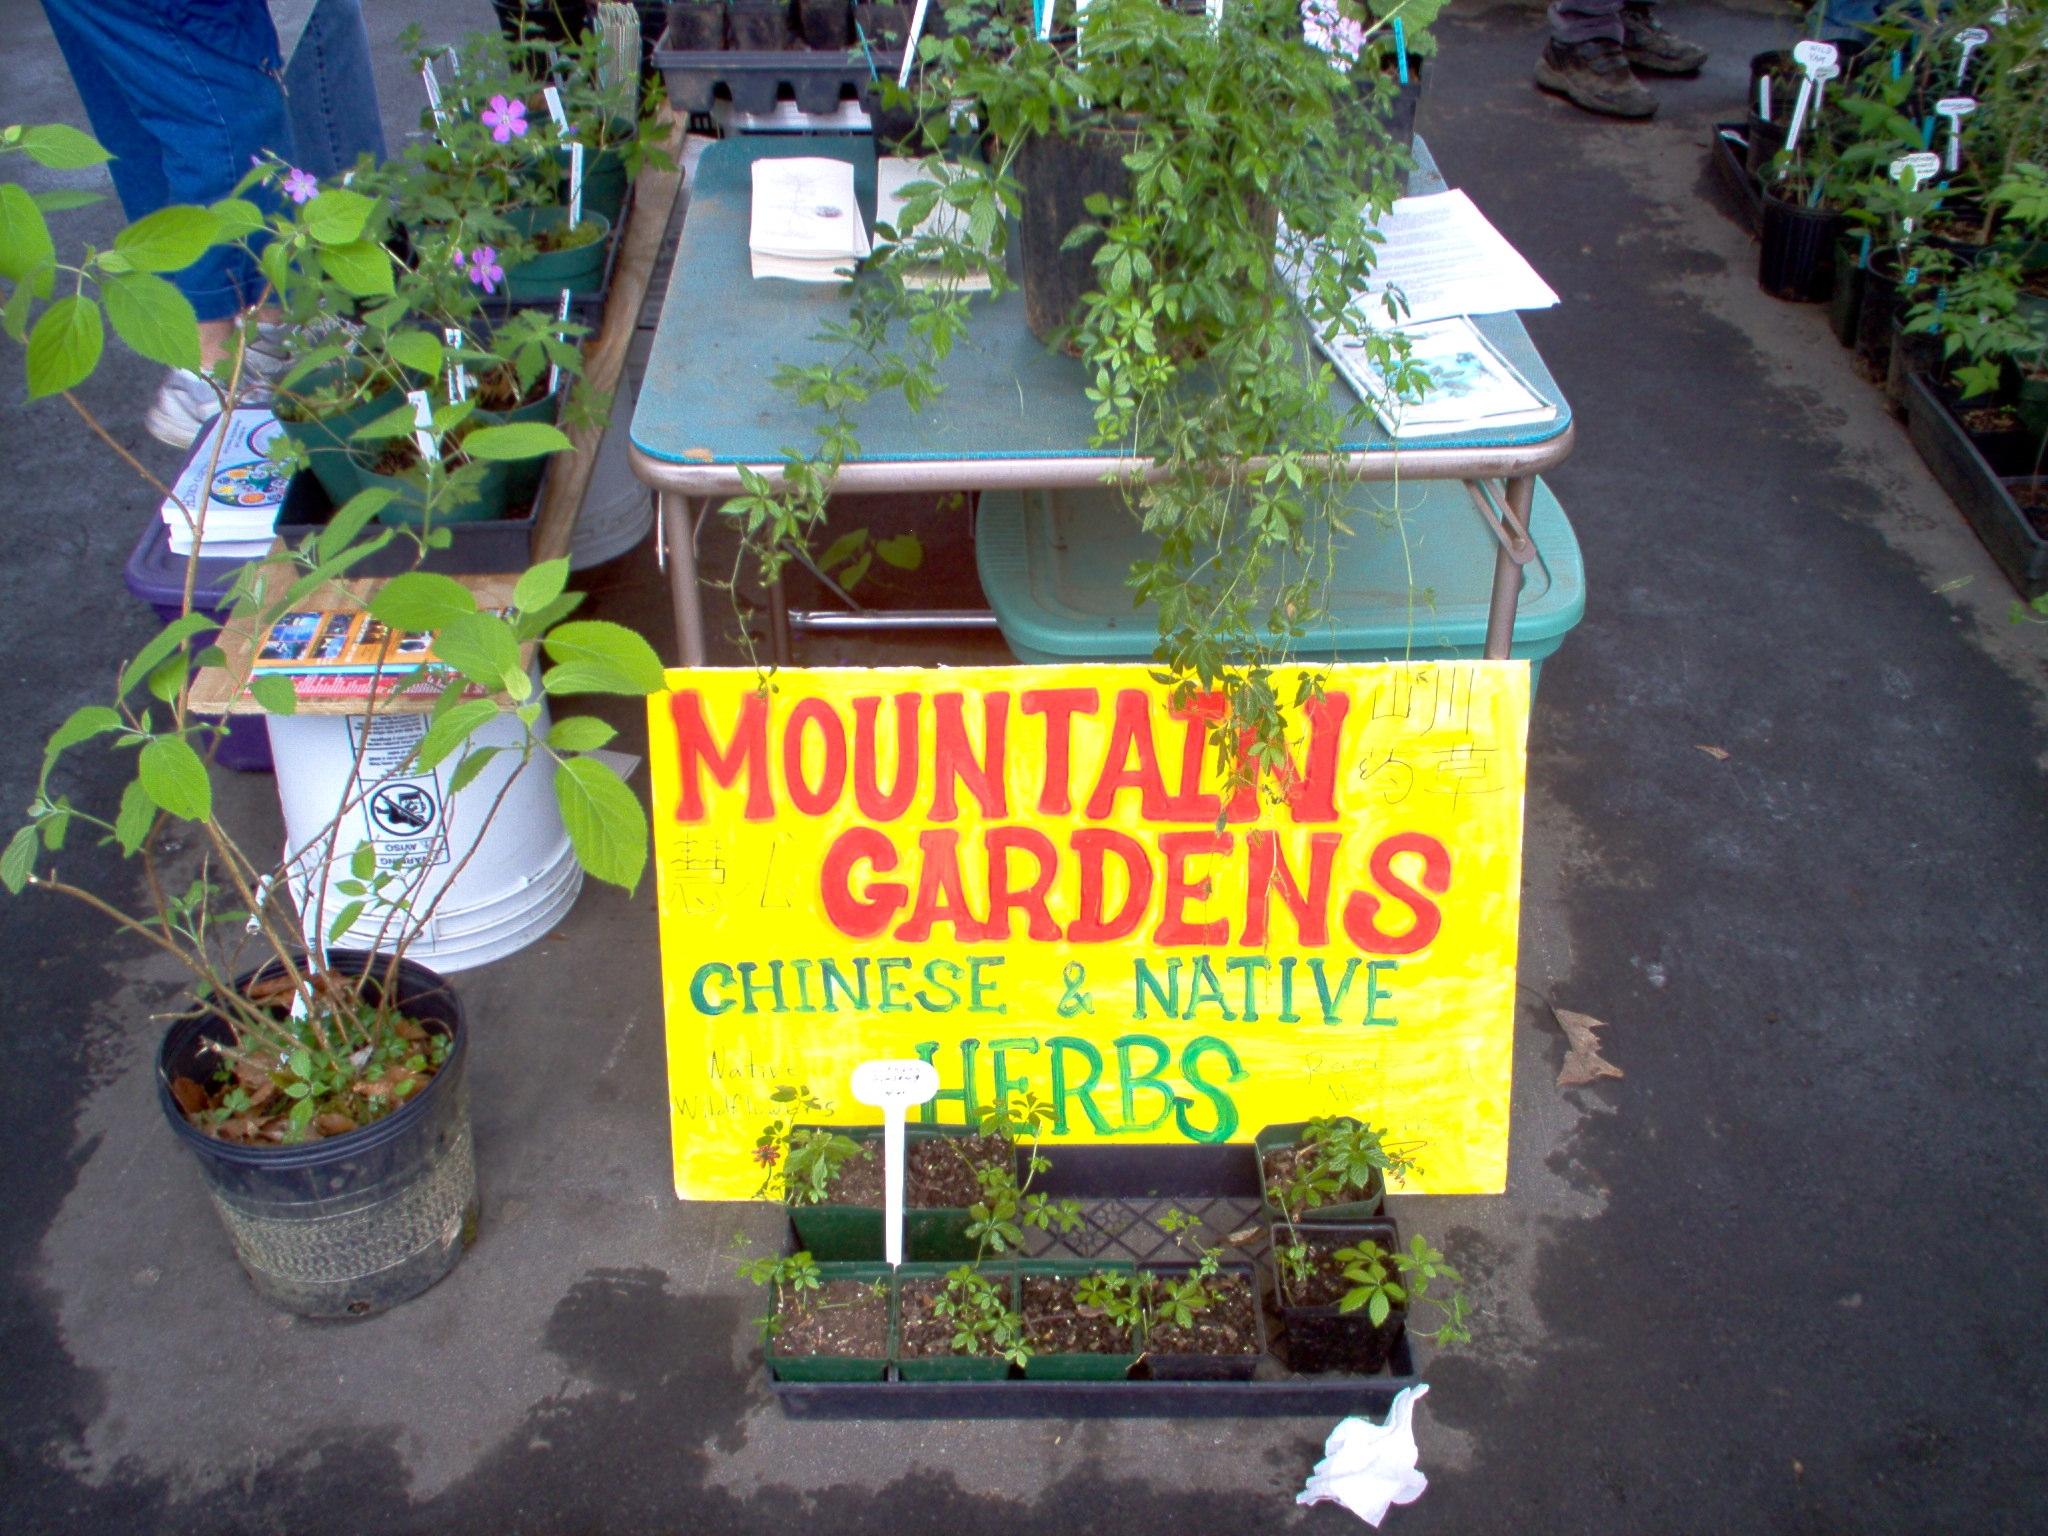 2004 herbfair display.JPG